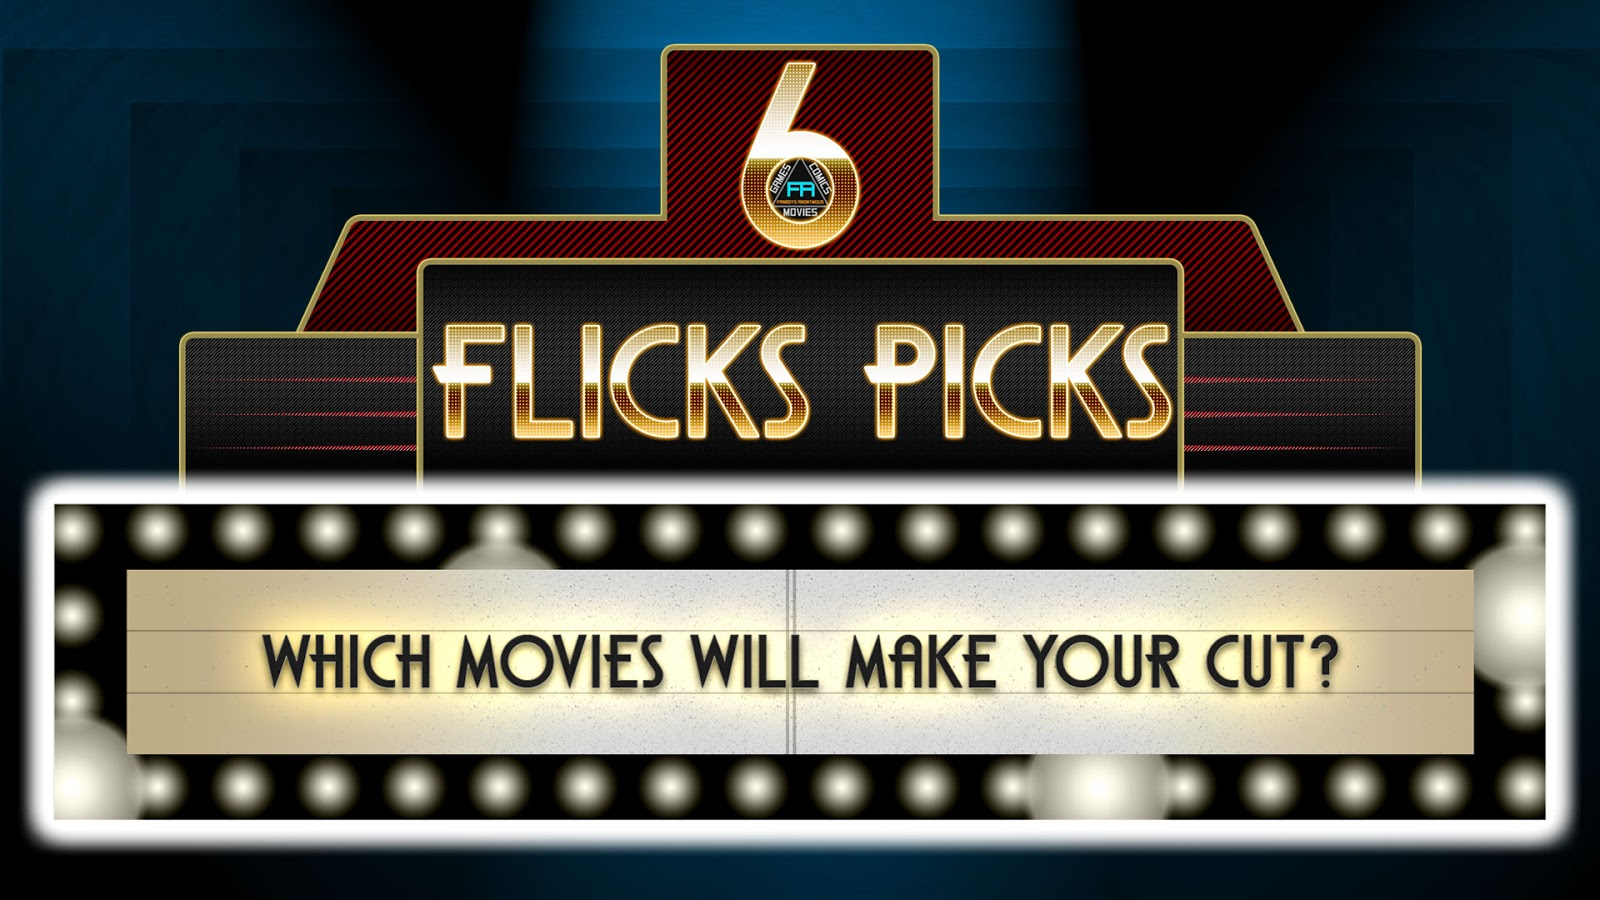 What movies are coming out August 2016 6 Flicks Picks